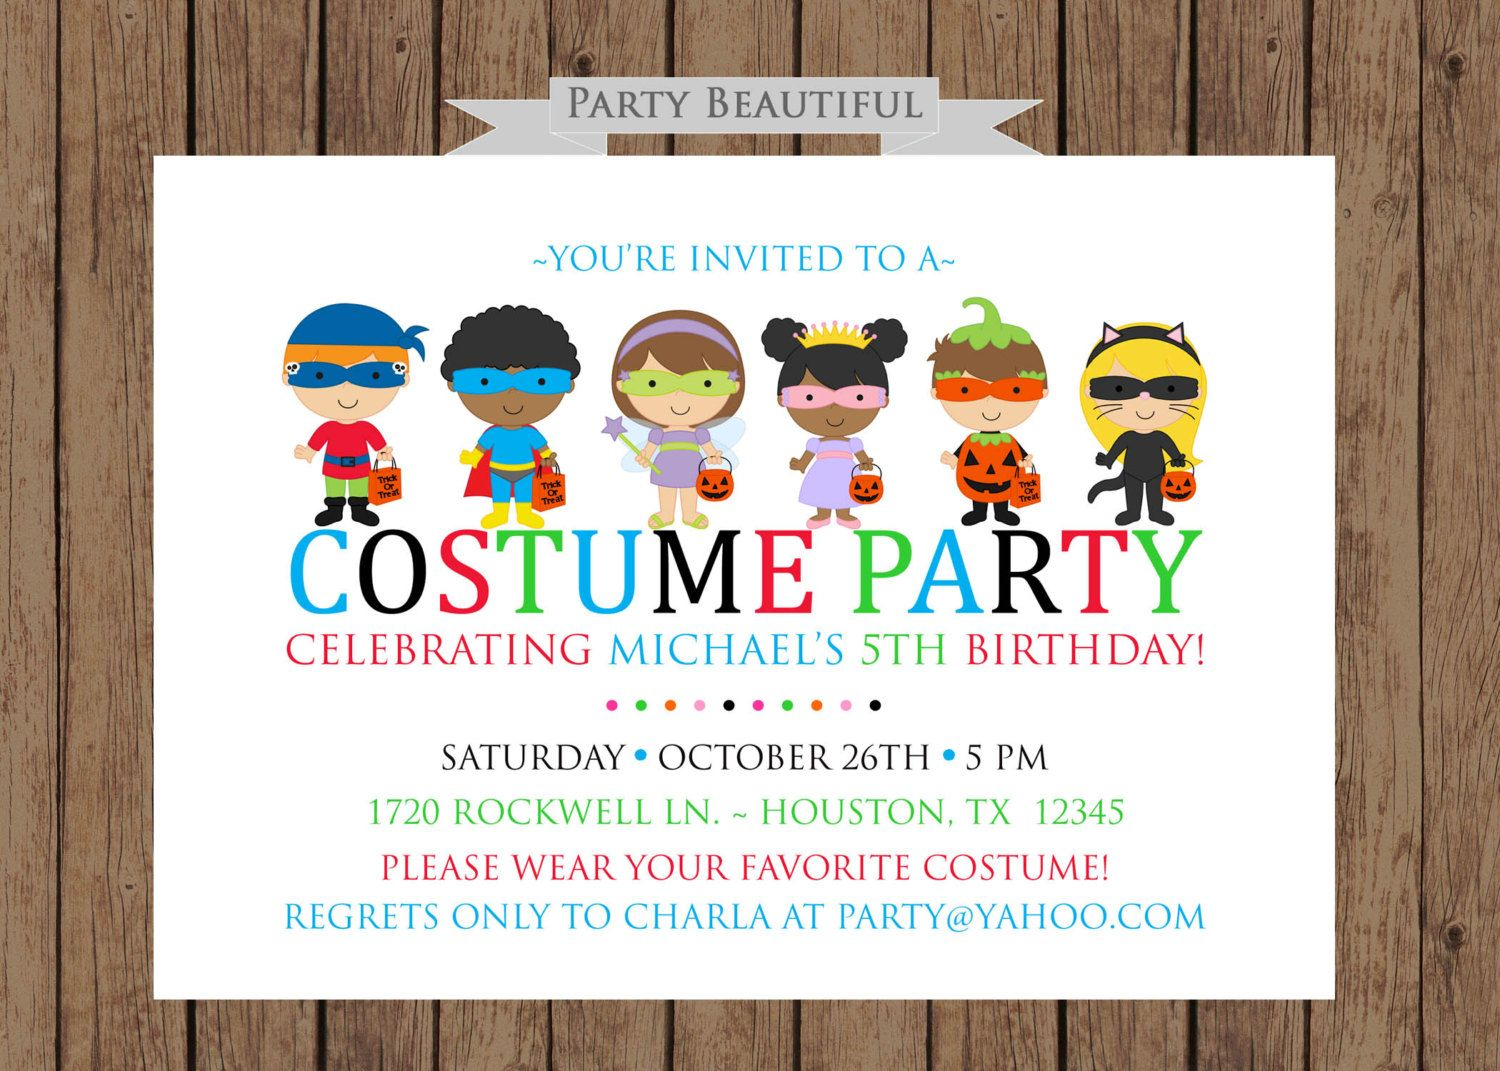 Costume Party Birthday InvitationBoys Halloween by PartyBeautiful ...